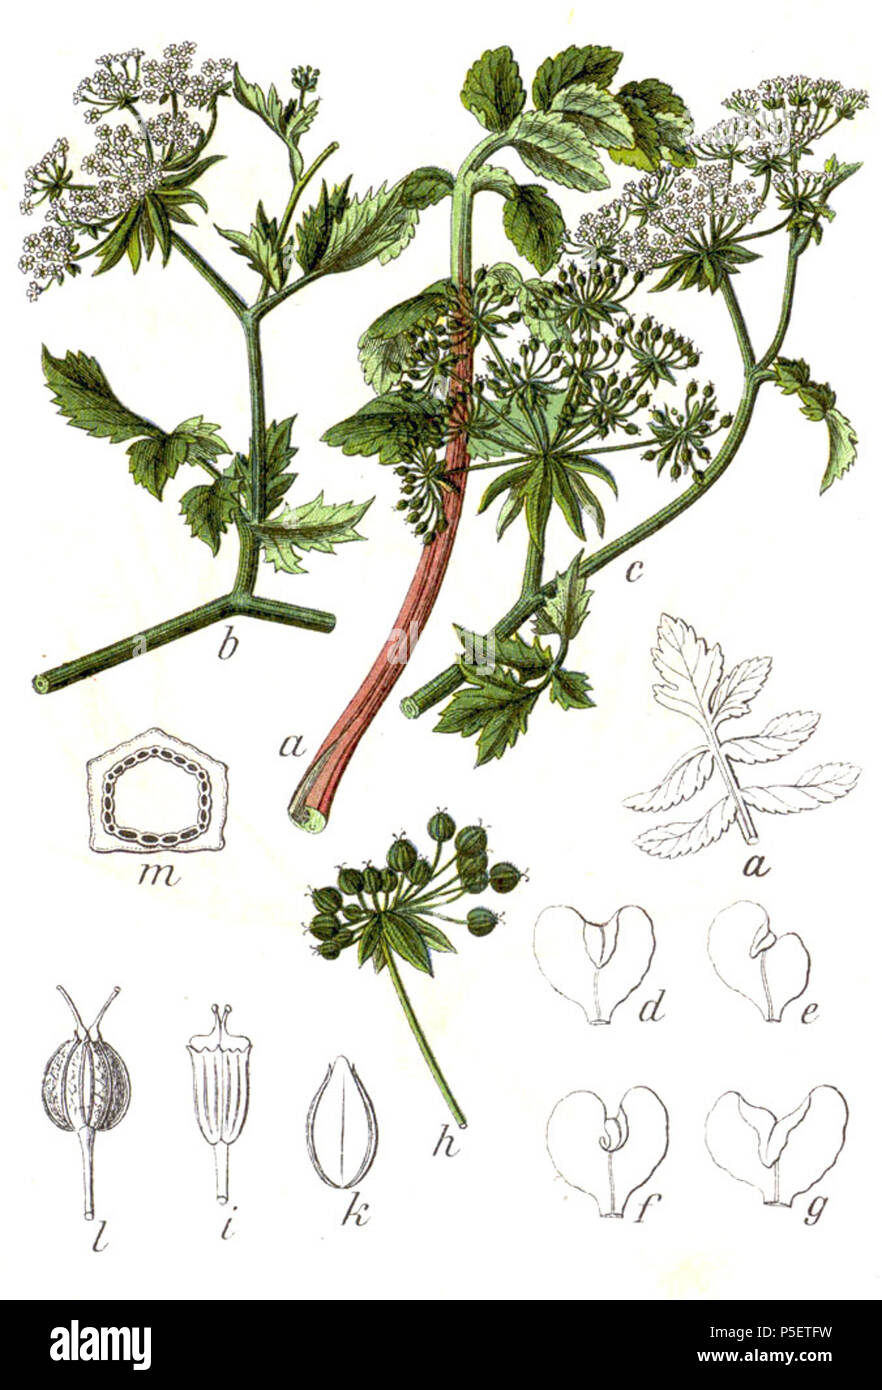 N/A. Berula erecta (Huds.) Coville, syn. Sium angustifolium L. Original Caption Gemeine Berle, Sium angustifolium . 1796. Johann Georg Sturm (Painter: Jacob Sturm) 194 Berula erecta Sturm12 Stock Photo